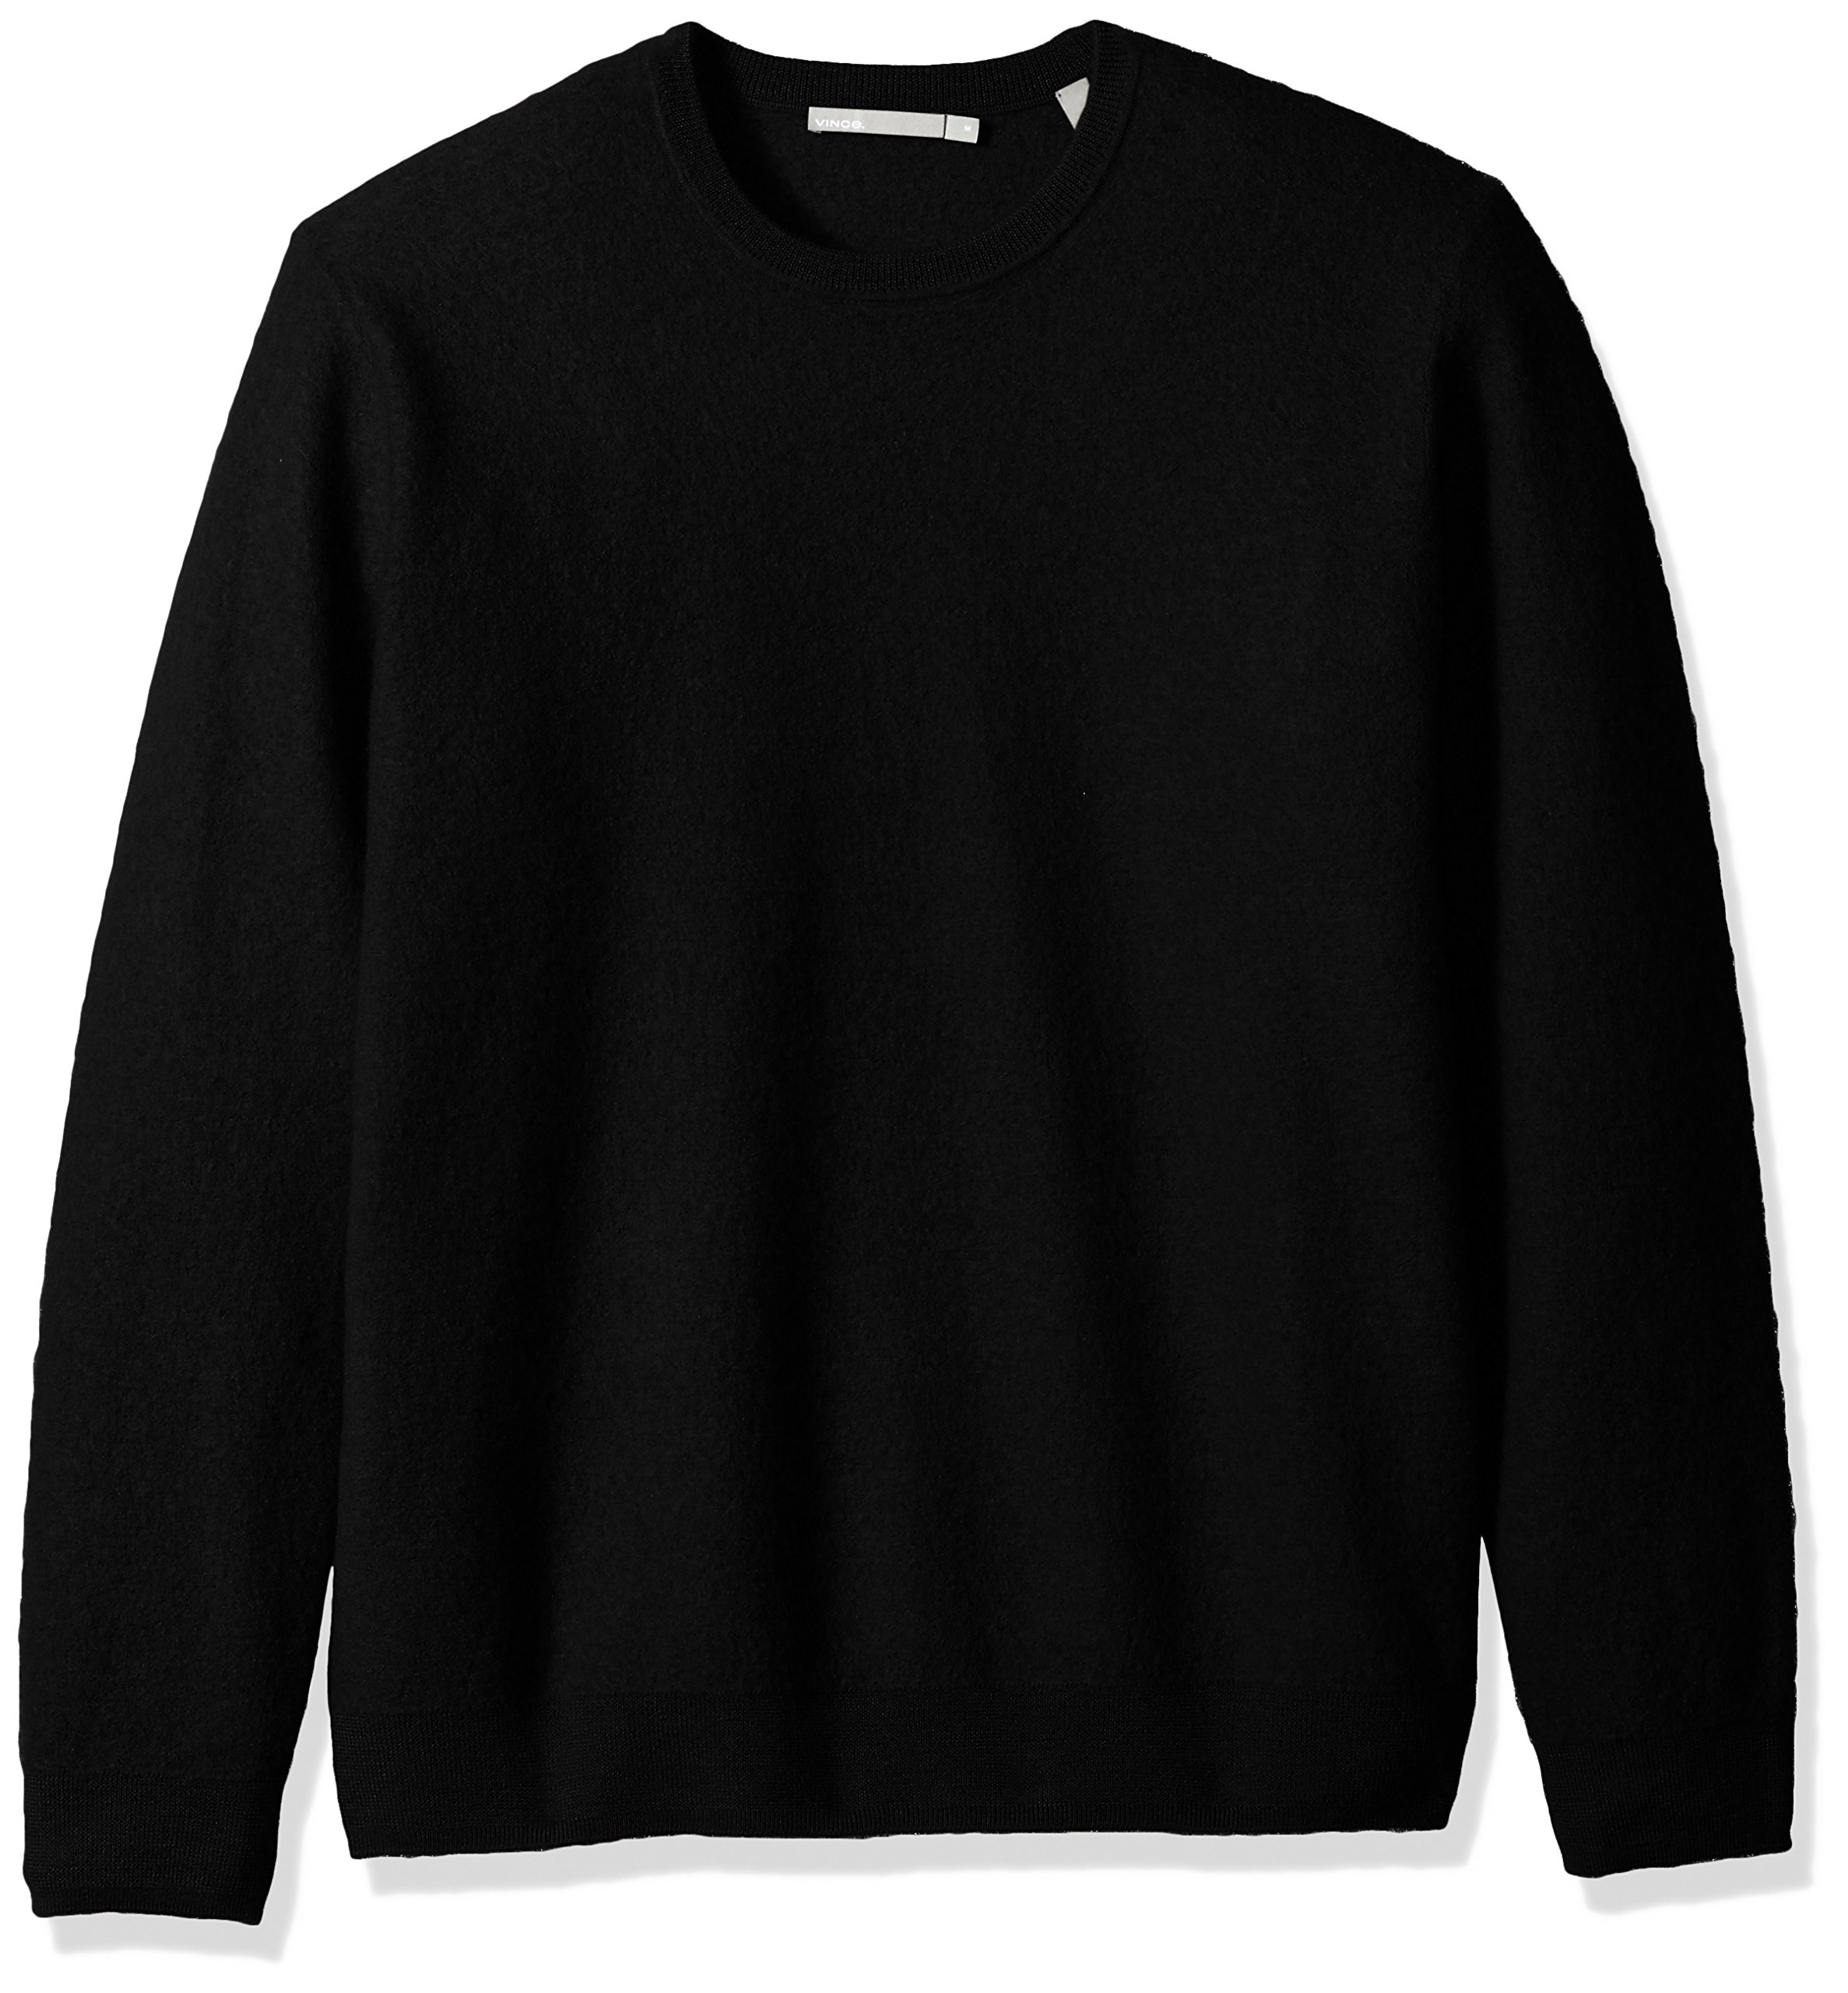 Vince Men's Simmered Cashmere Oversized Crew Neck Sweater, Black, S